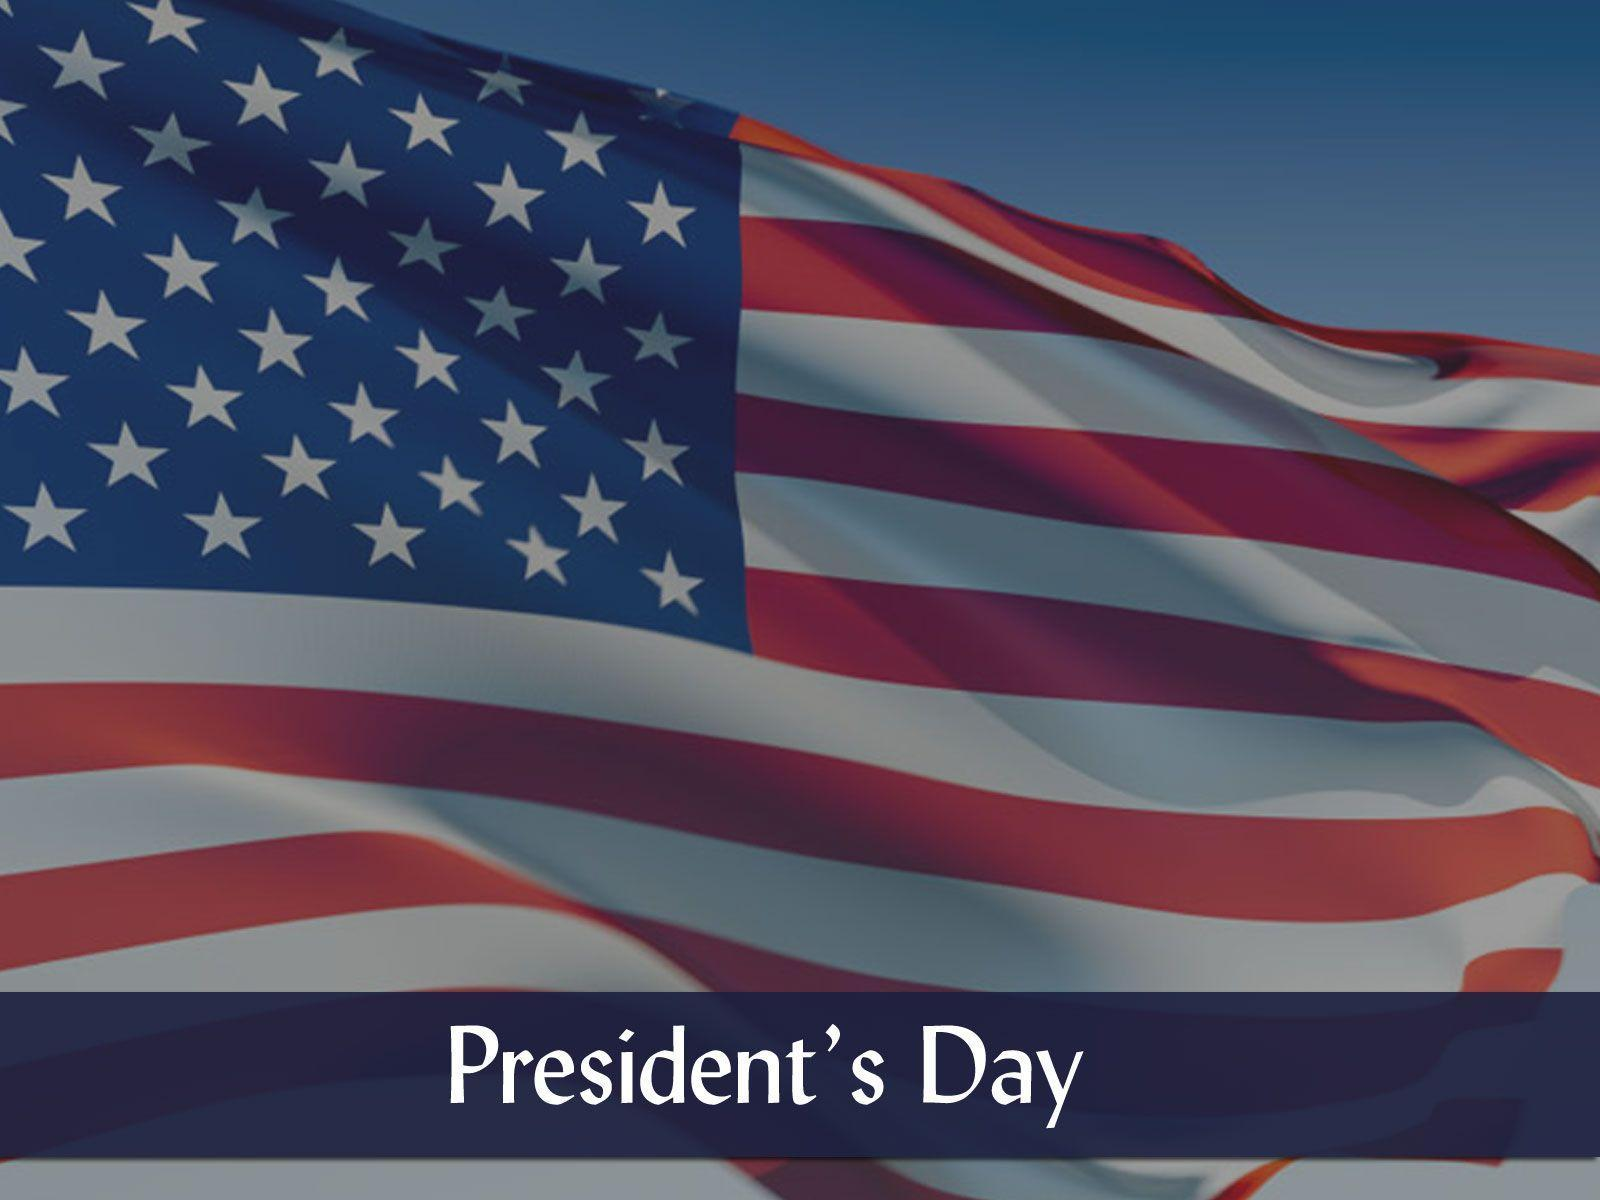 Presidents Day Picture - Wallpaper Photo #